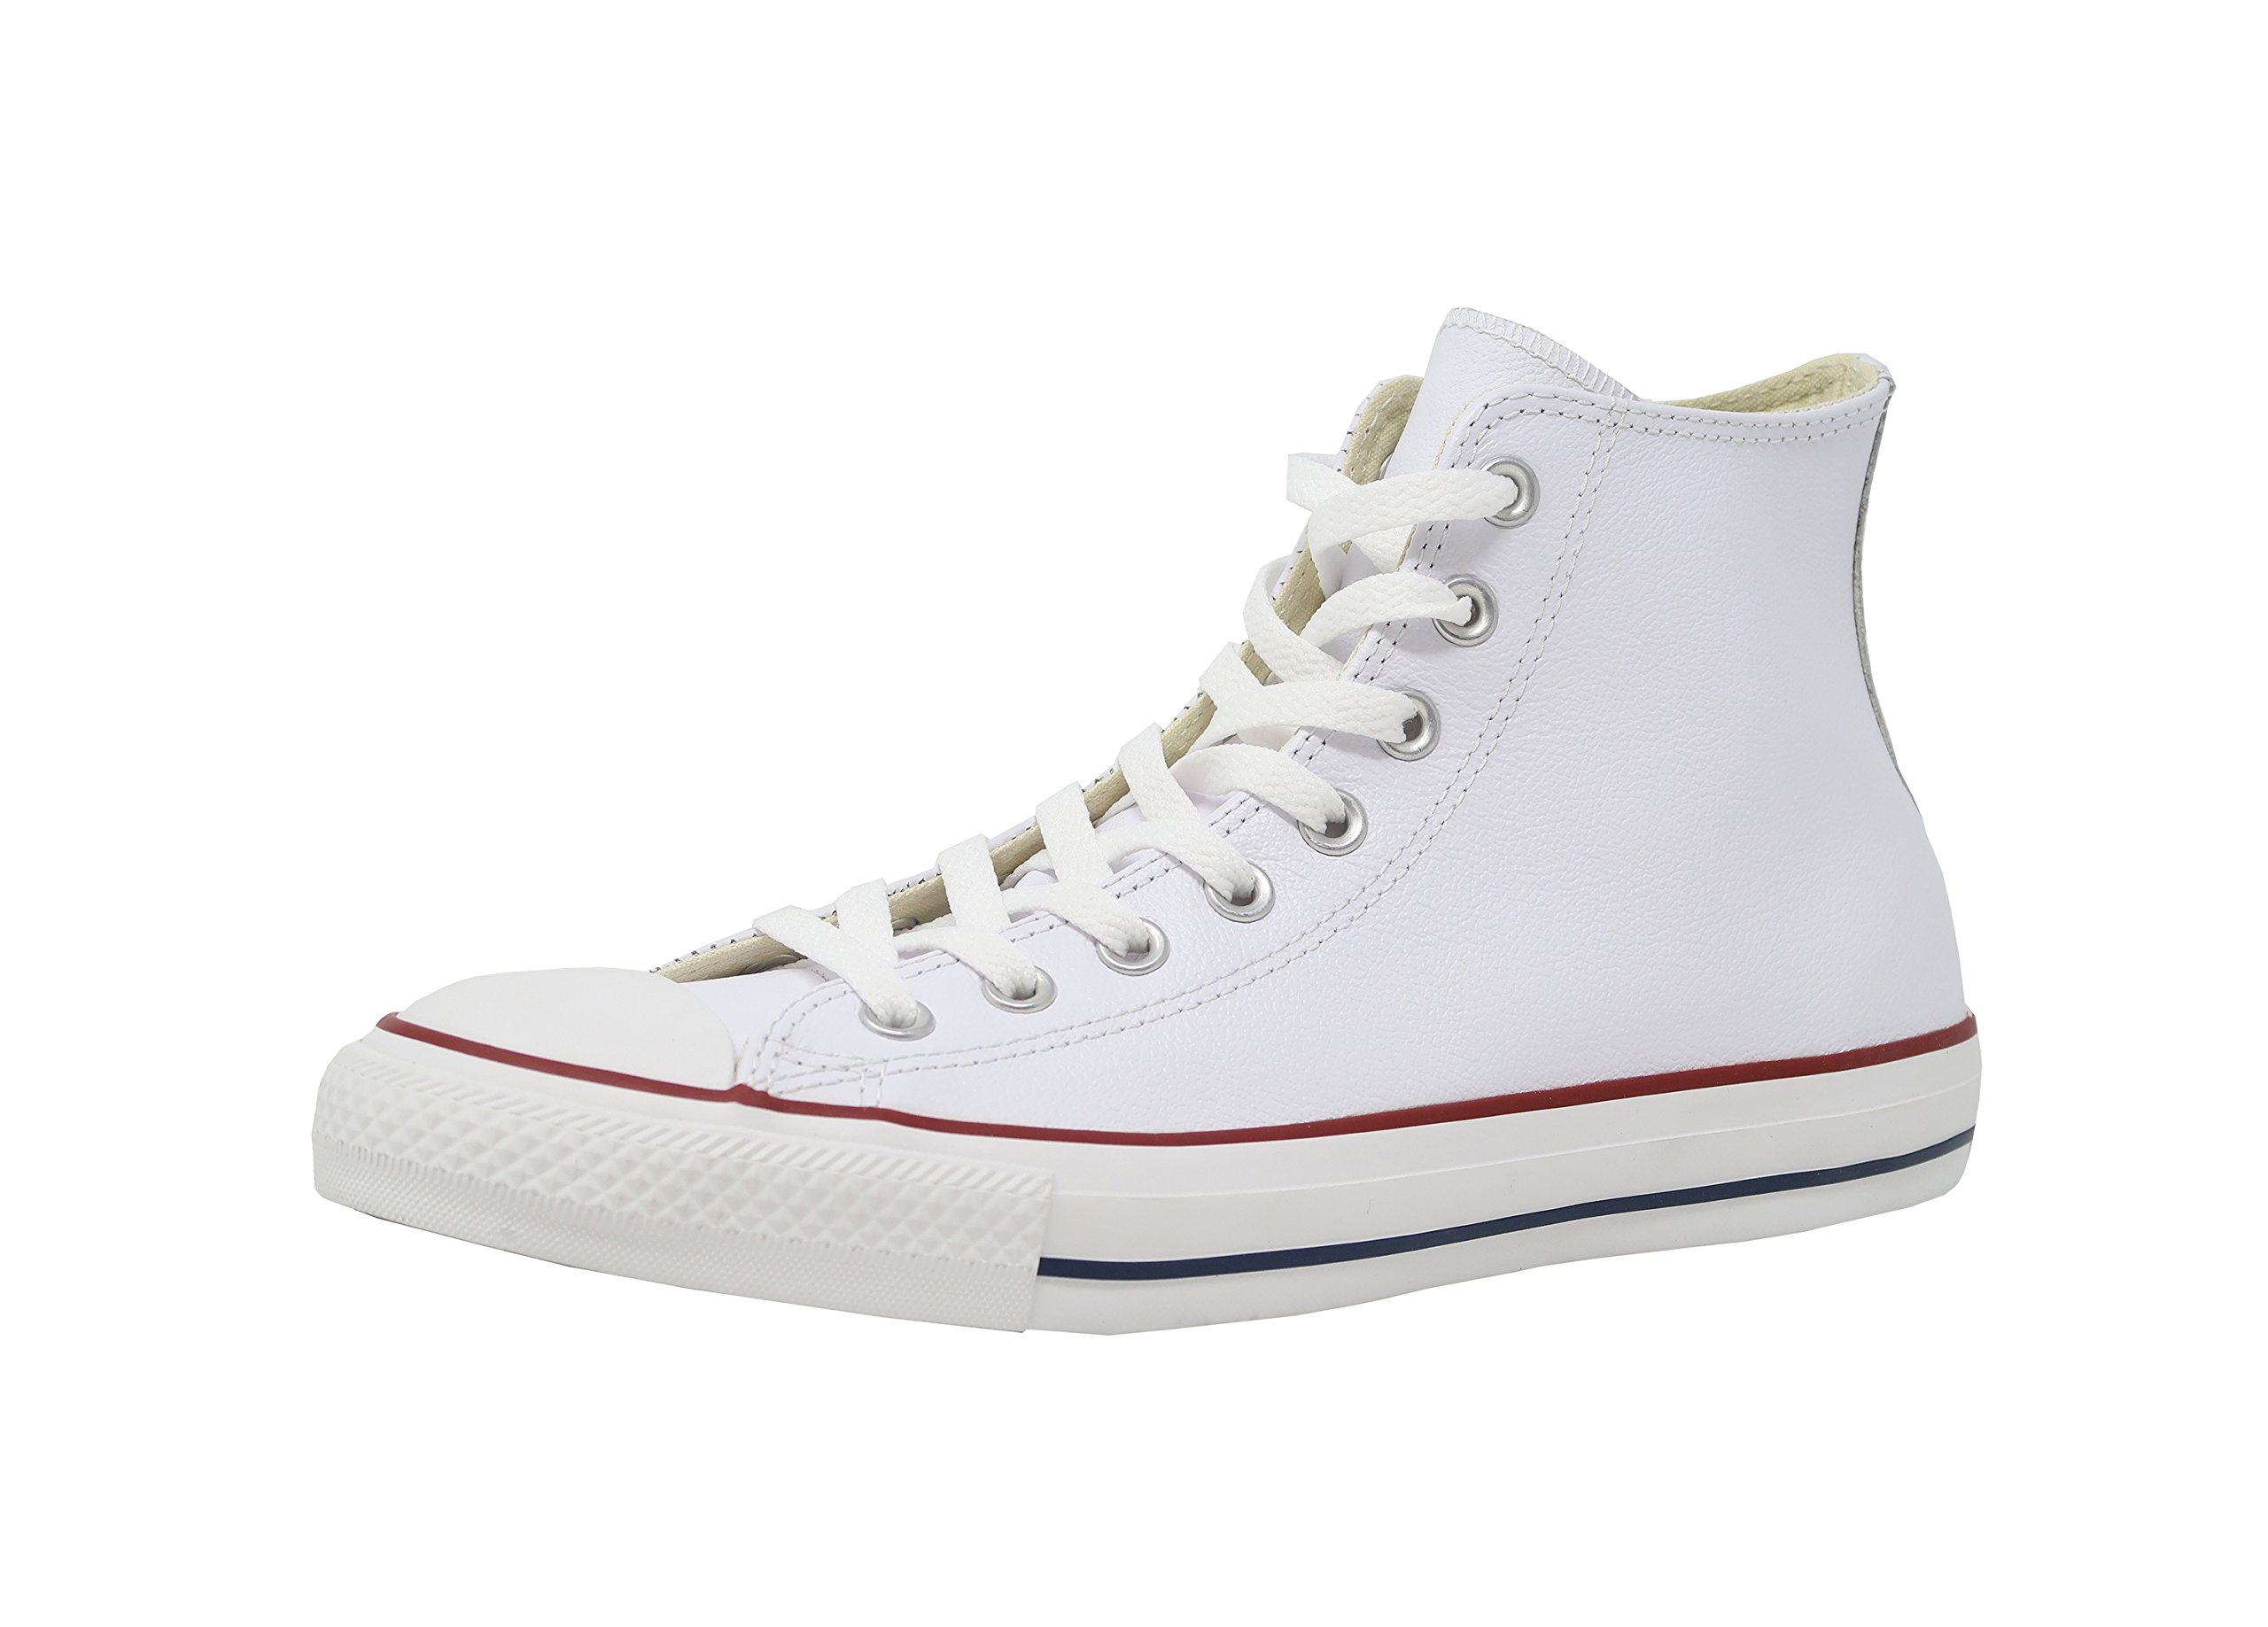 2b7f9d5a8dc6 Galleon - Converse Chuck Taylor Hi Leather White 132169C Size 10.5